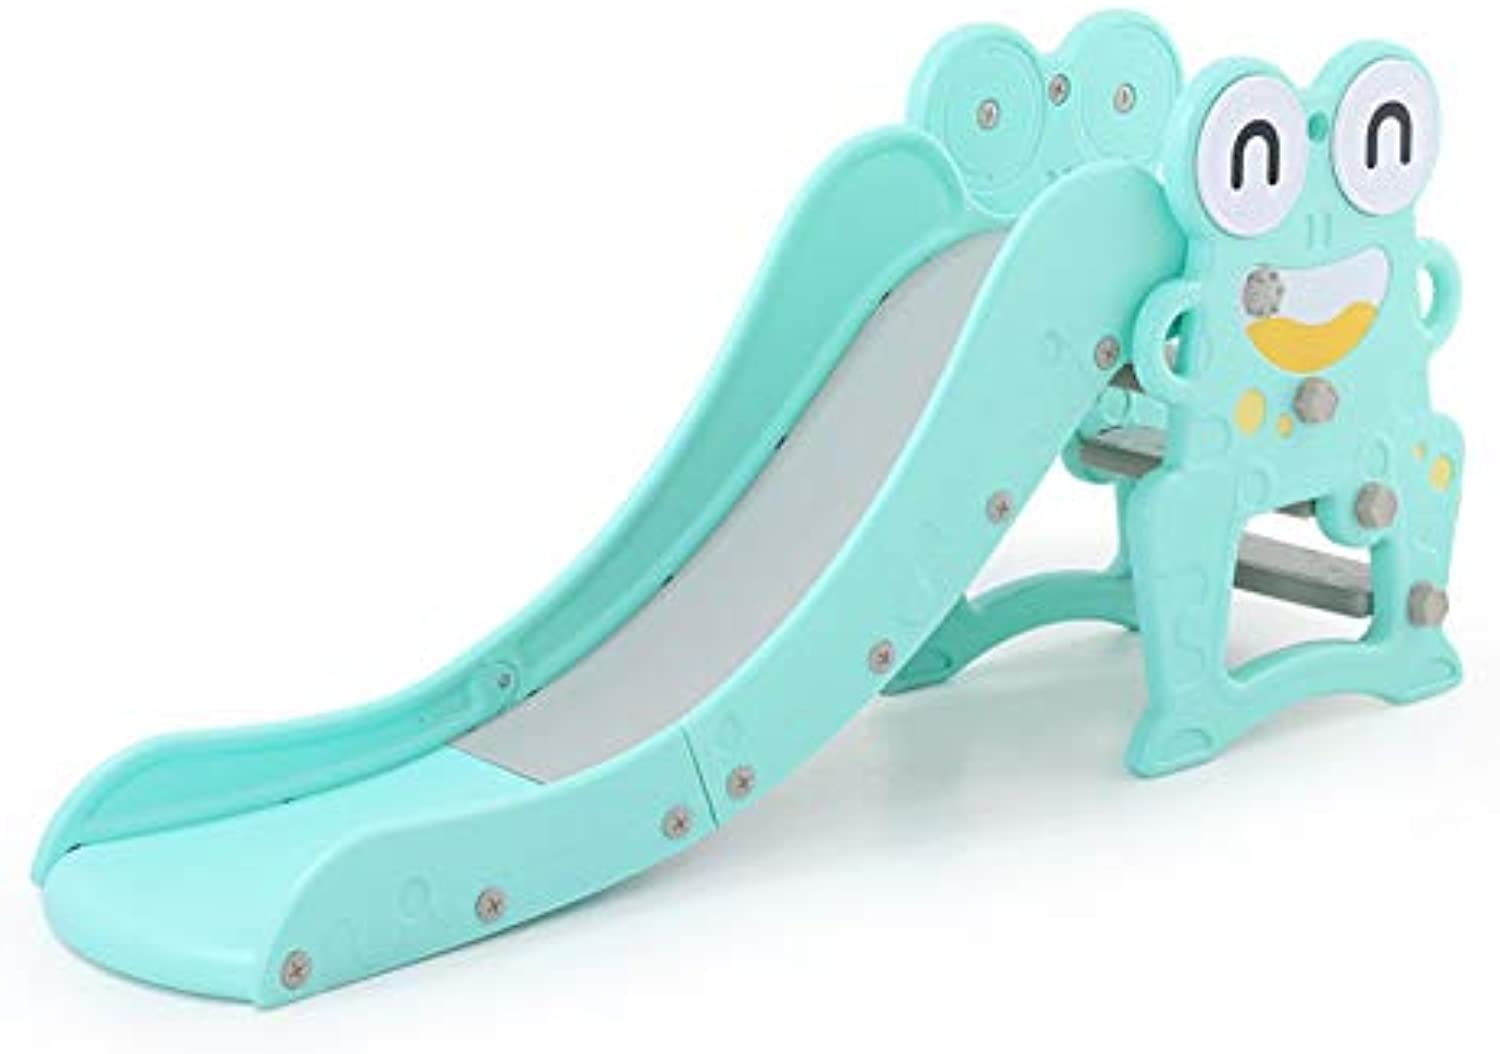 Slide Lengthen and Climber with Ball Rack Durable Outdoor Slide and Climber with Ball Game Accessories Suitable for 27 Years Old